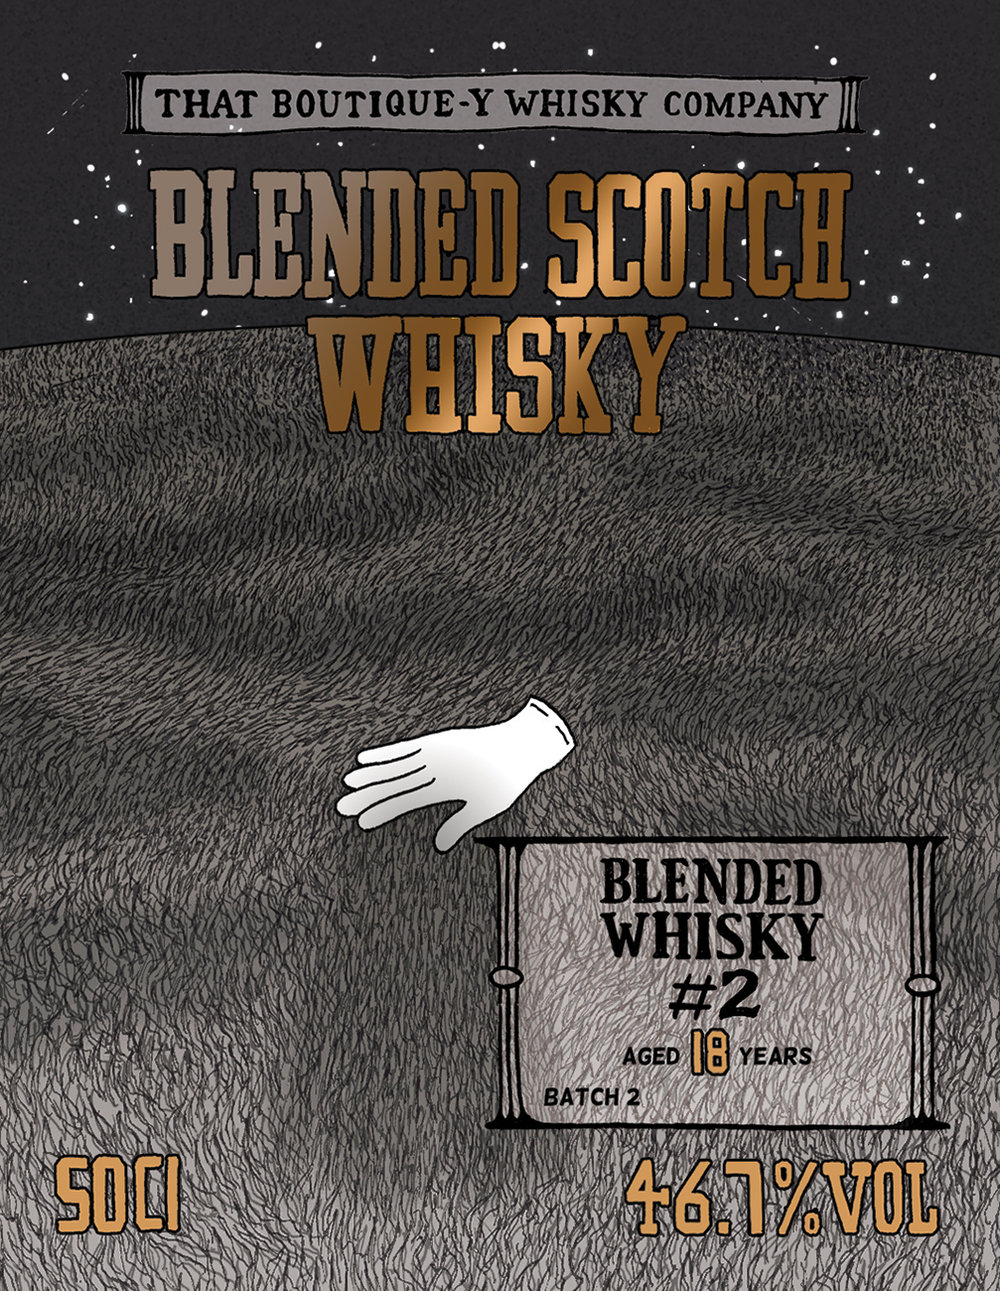 Blended Scotch Whisky 2 B2.jpg